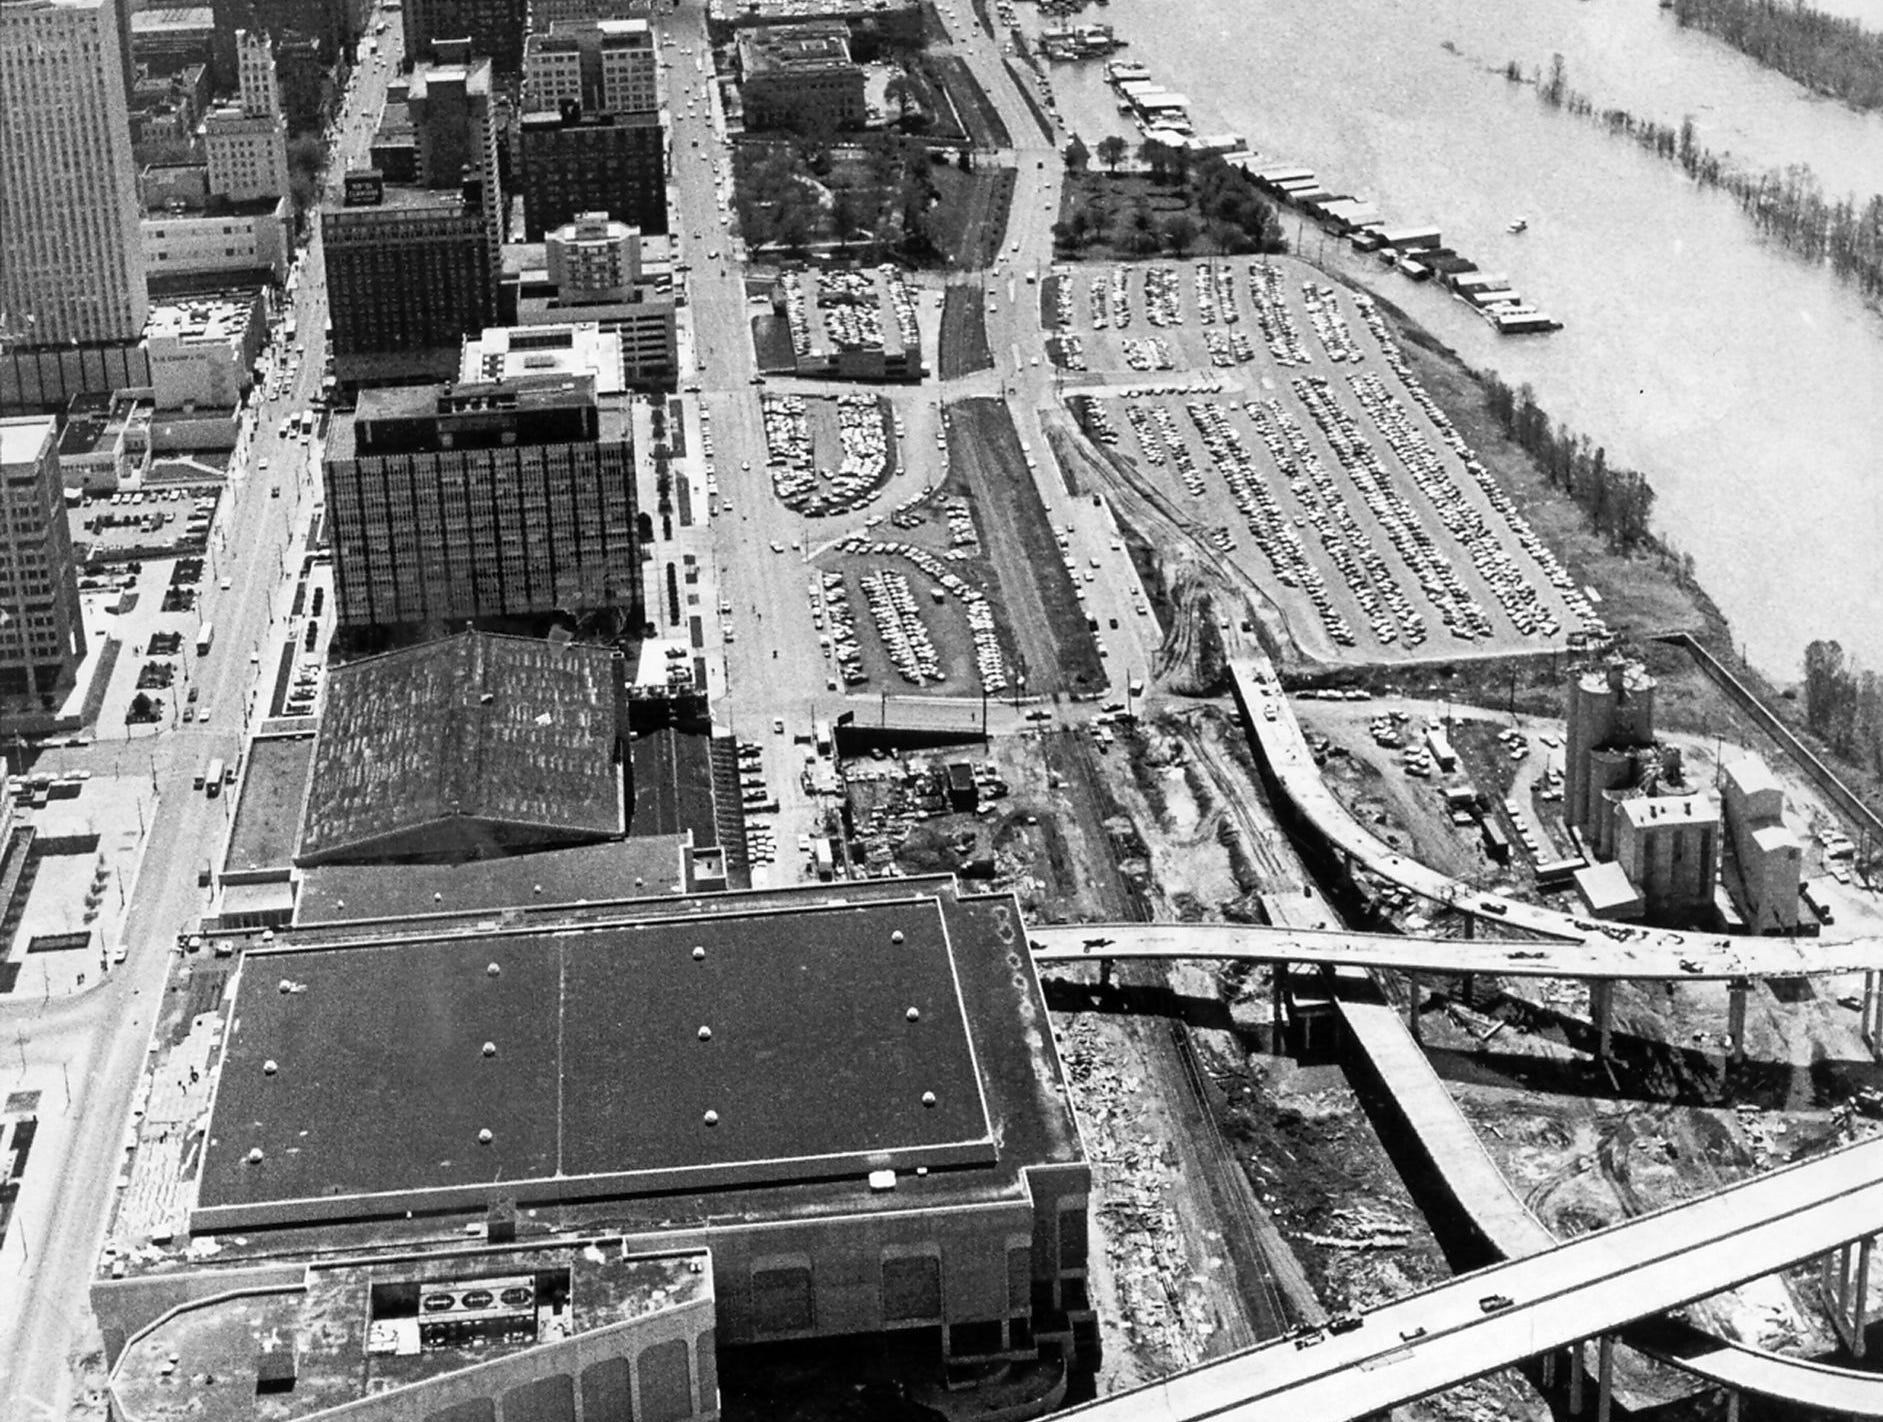 Downtown Memphis as seen in this March 28, 1973, aerial photograph taken looking toward the south before the Mid-America Mall, Morgan Keegan Tower and Mud Island River Park were built. Waterford Plaza is also missing from the South end of the downtown area.